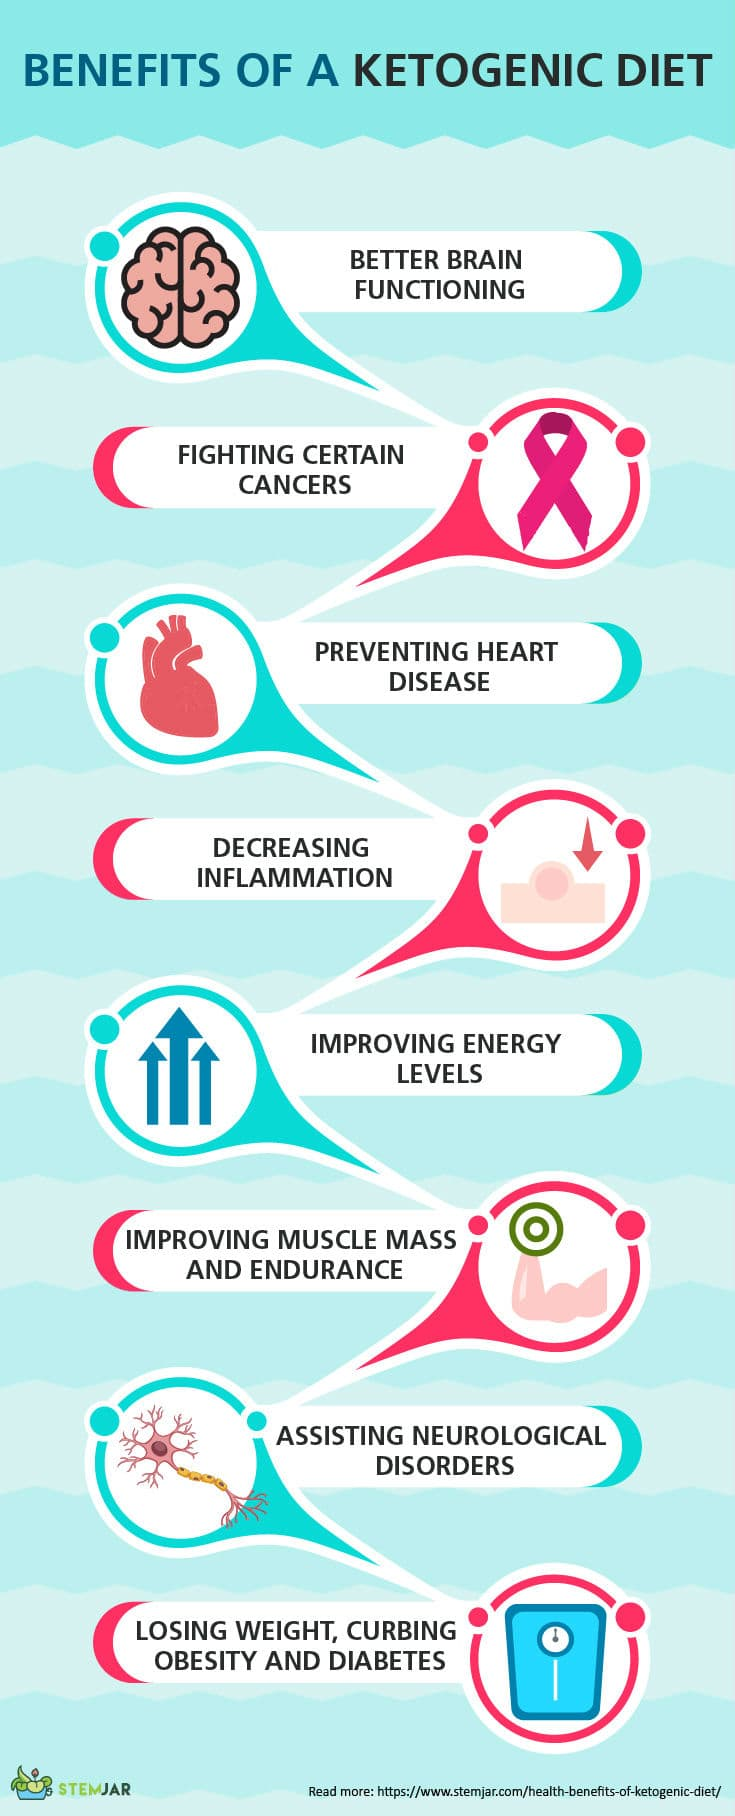 Weight loss can be considered as one of the various other health benefits of ketogenic diet such as it can help in fighting certain cancers, improves brain functions, reduce inflammation, prevents heart disease, improves energy level, etc.